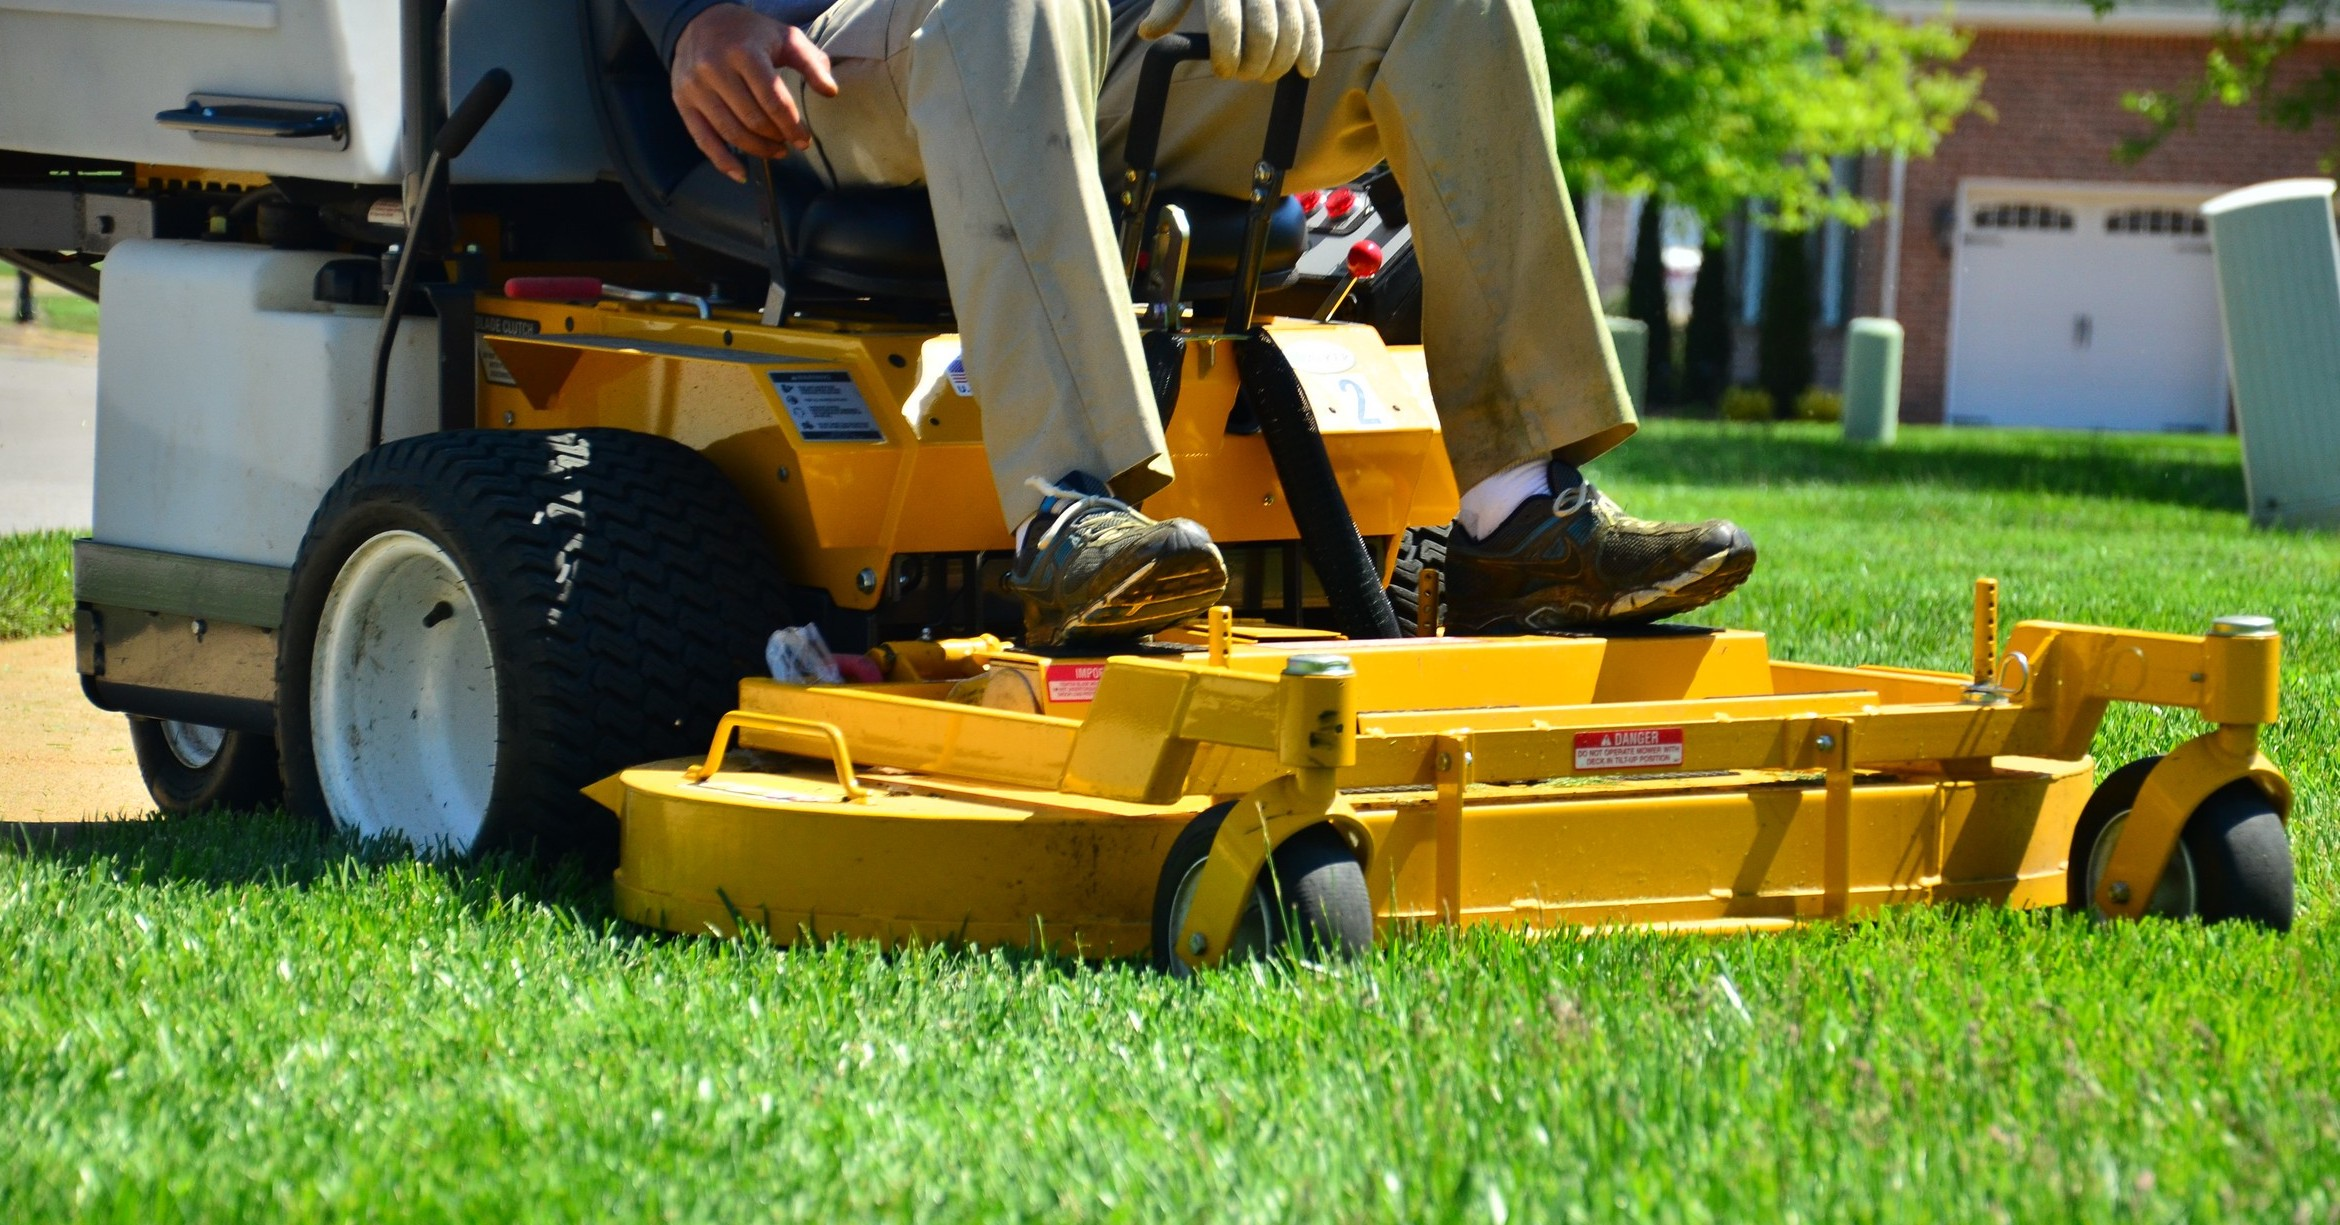 Lawn Mowers 187 Blog Archive Repair A Riding Lawn Mower Or